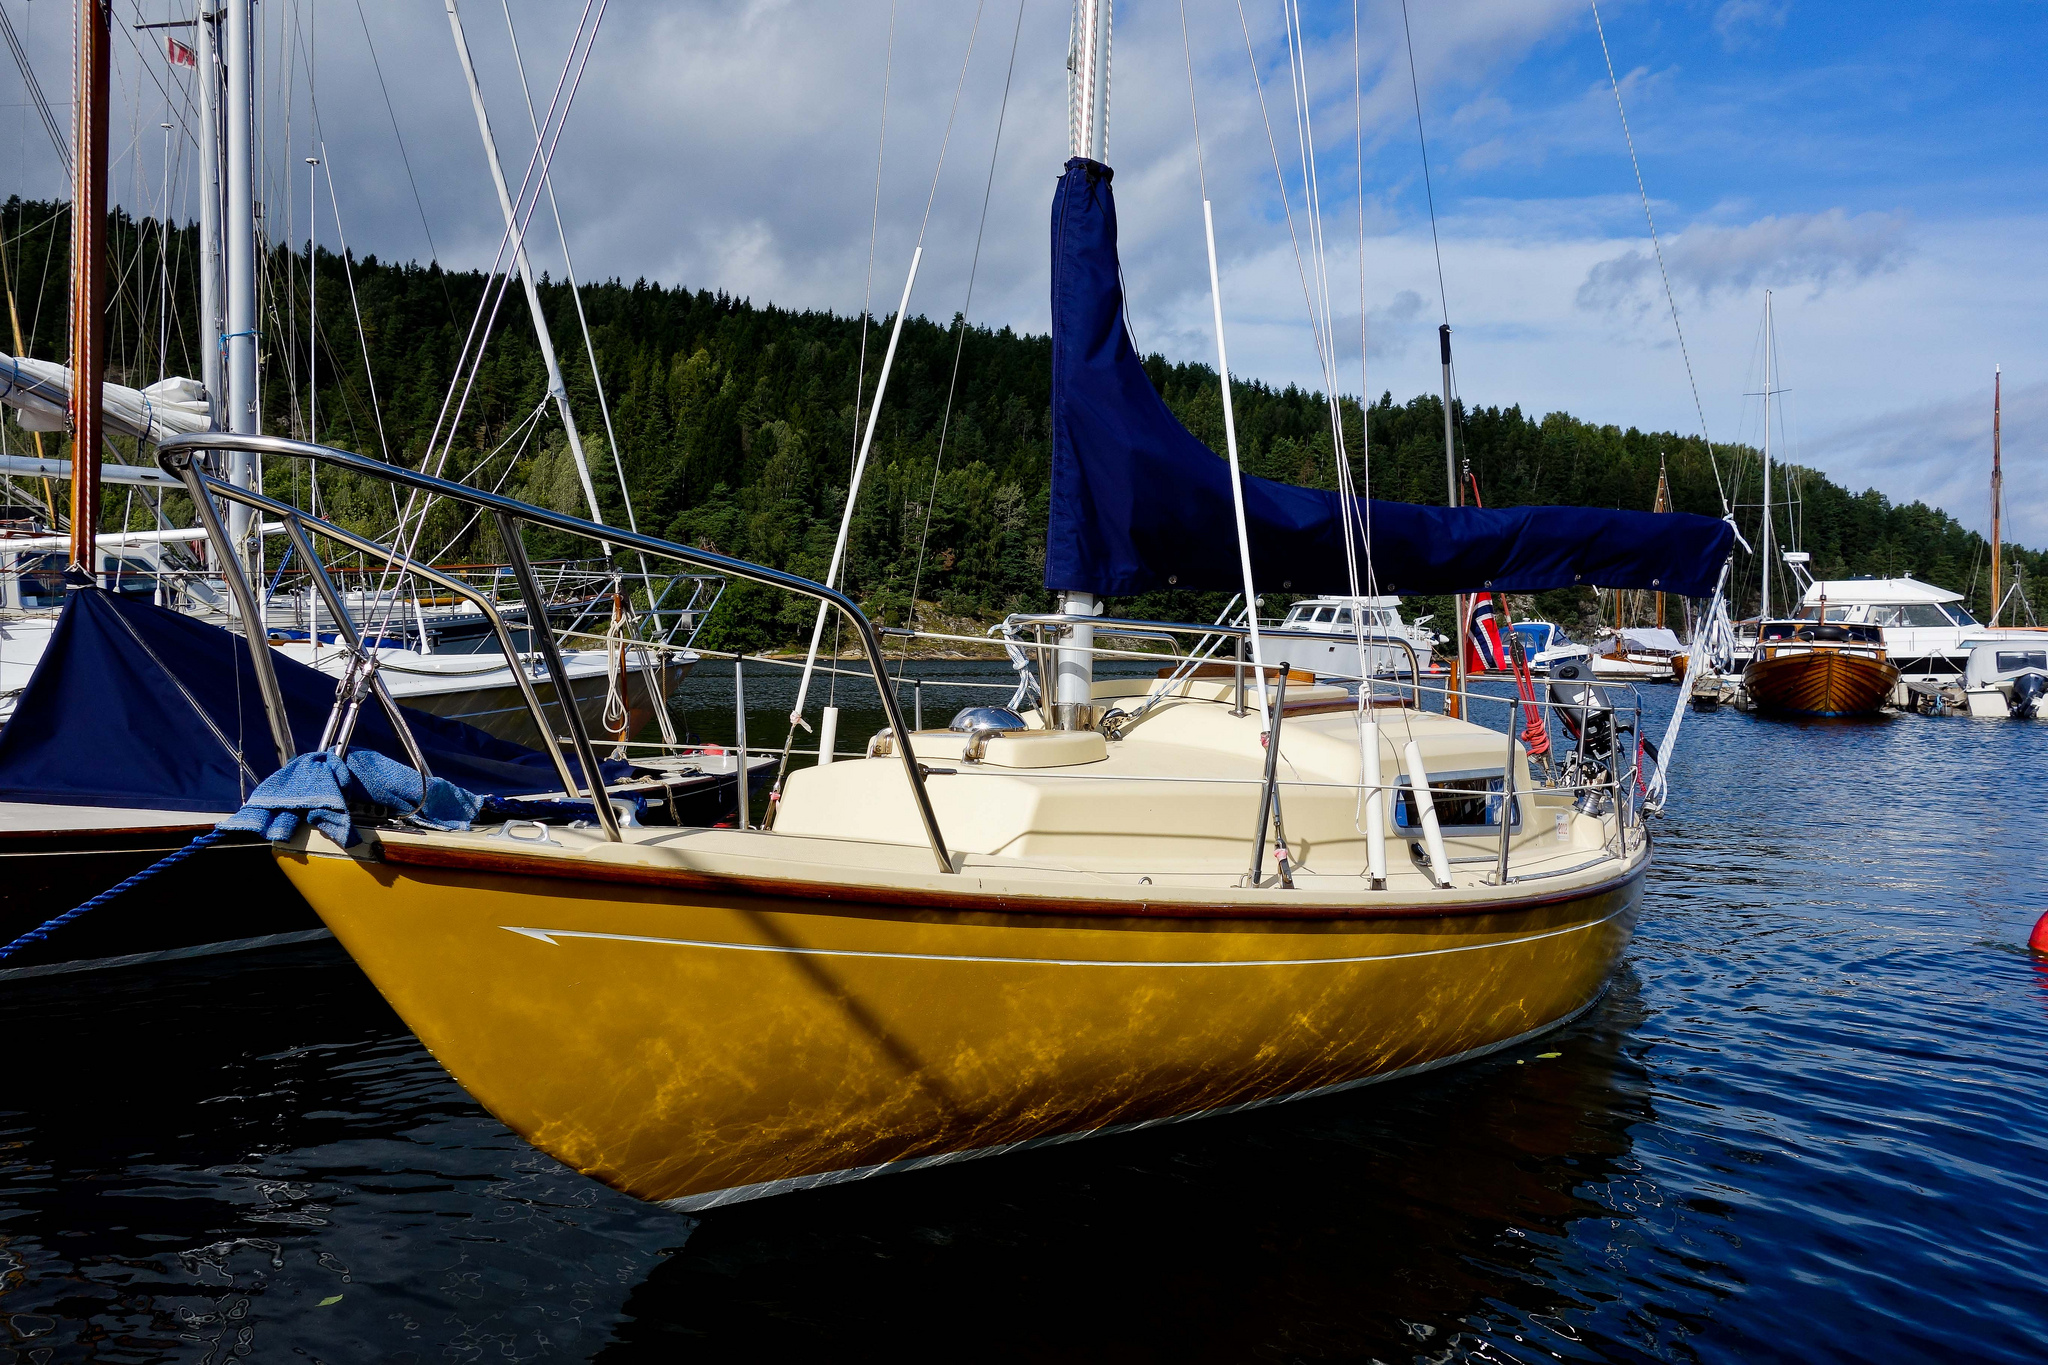 A fine example of the Corribee 21 in Norway. Photo by: Daniel Novello